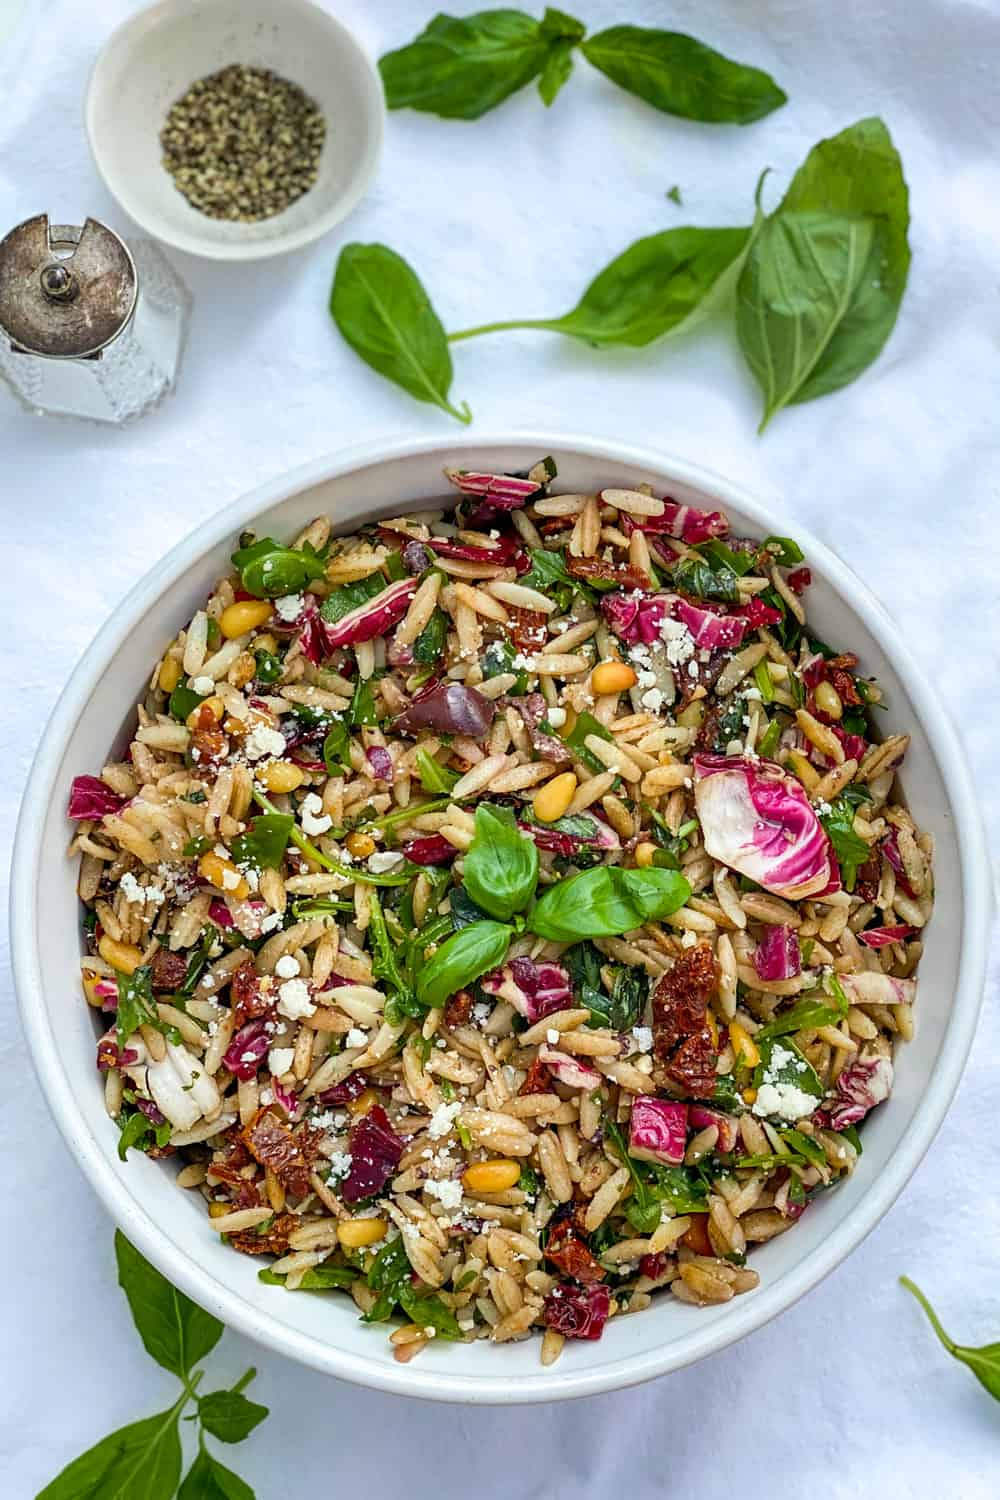 Bowl of orzo pasta salad on white tablecloth with basil leaves strewn around